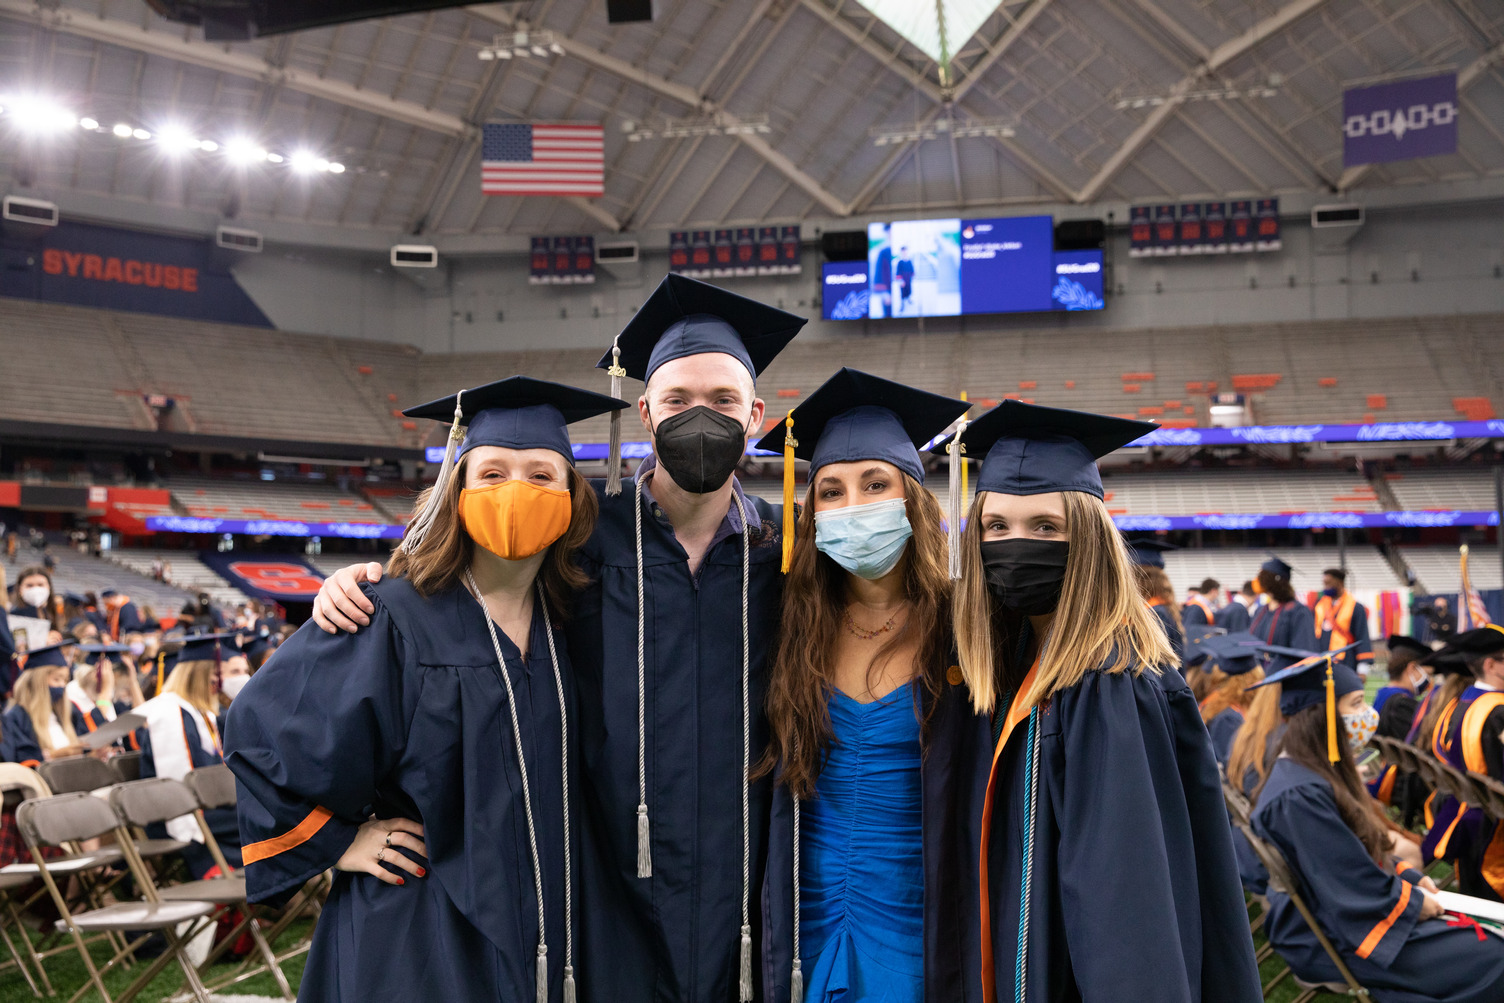 four people in caps and gowns at Commencement 2020 on Sept. 19, 2021, in the stadium